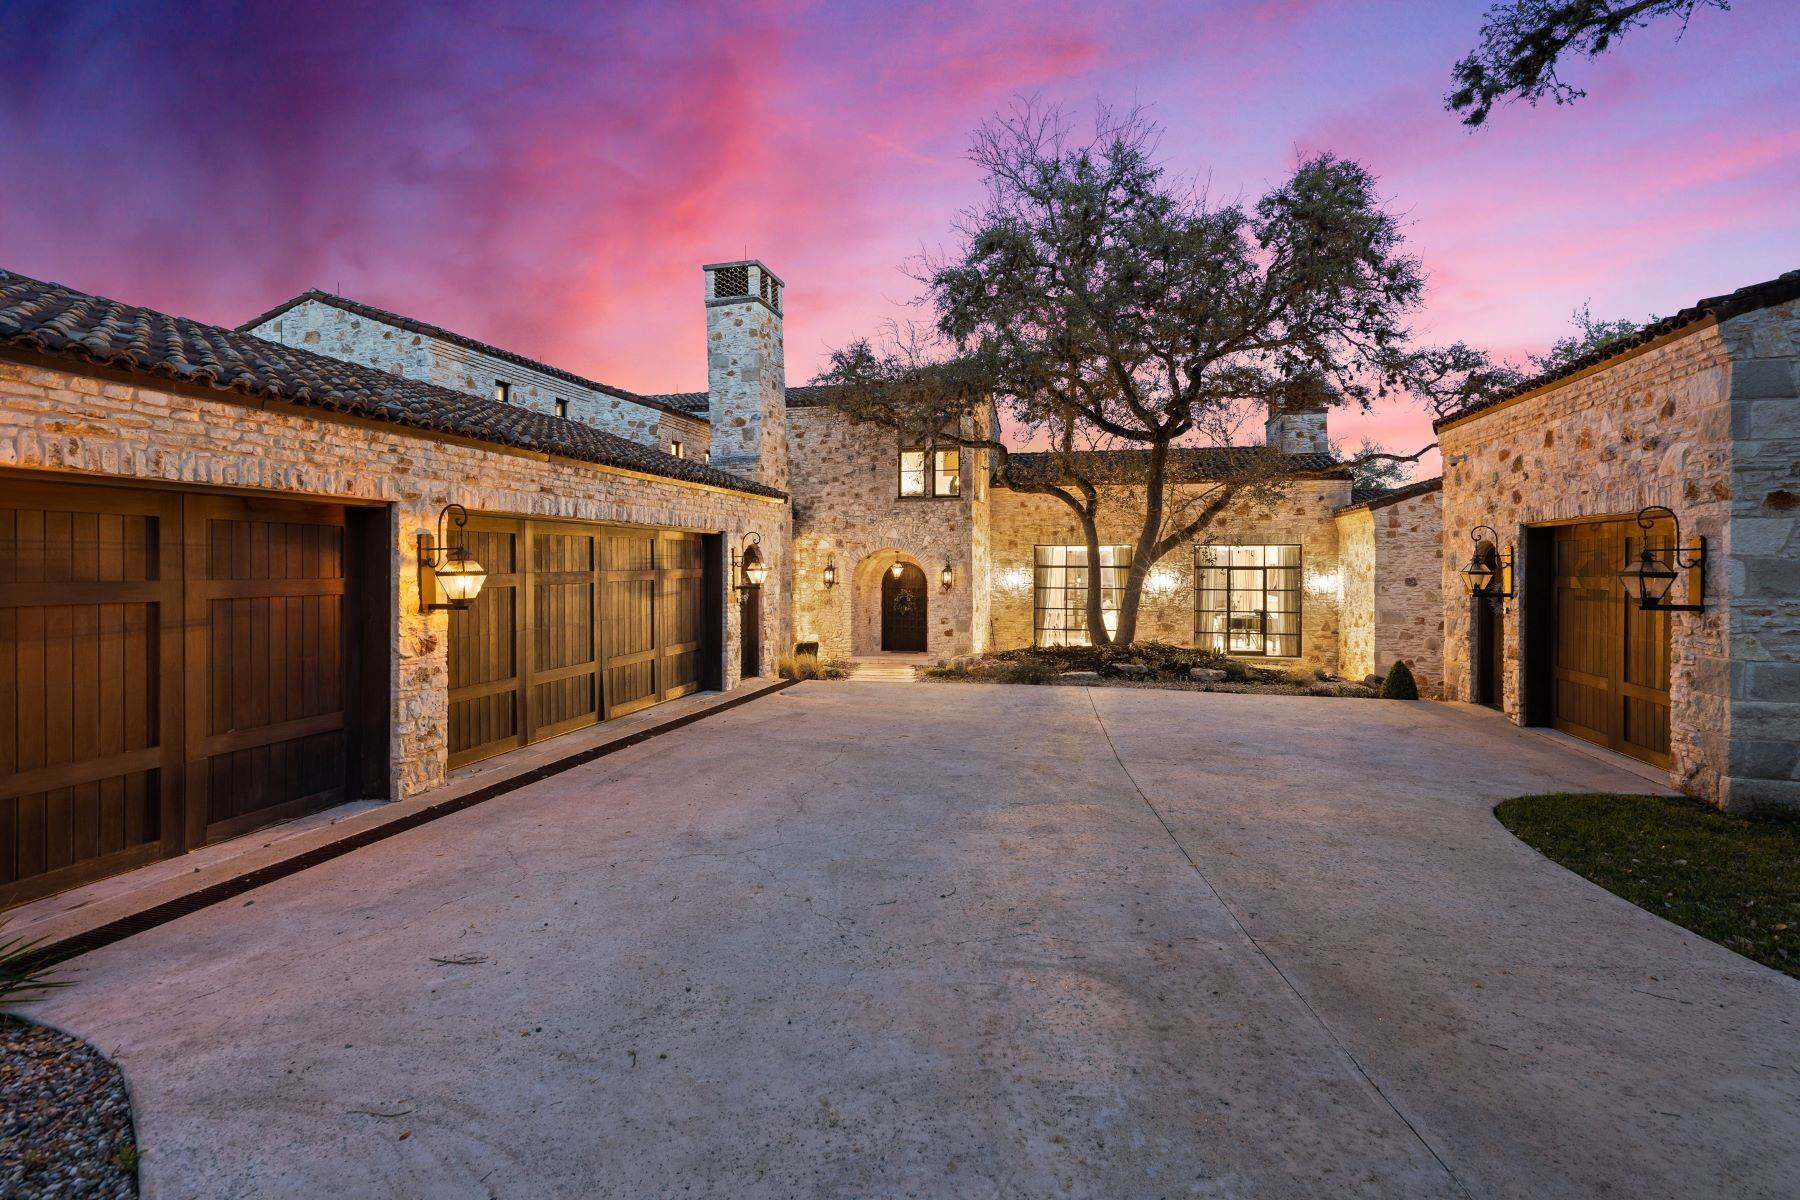 Single Family Homes for Sale at Italian Escape on Lake Austin 3901 Island Knoll Drive Austin, Texas 78746 United States